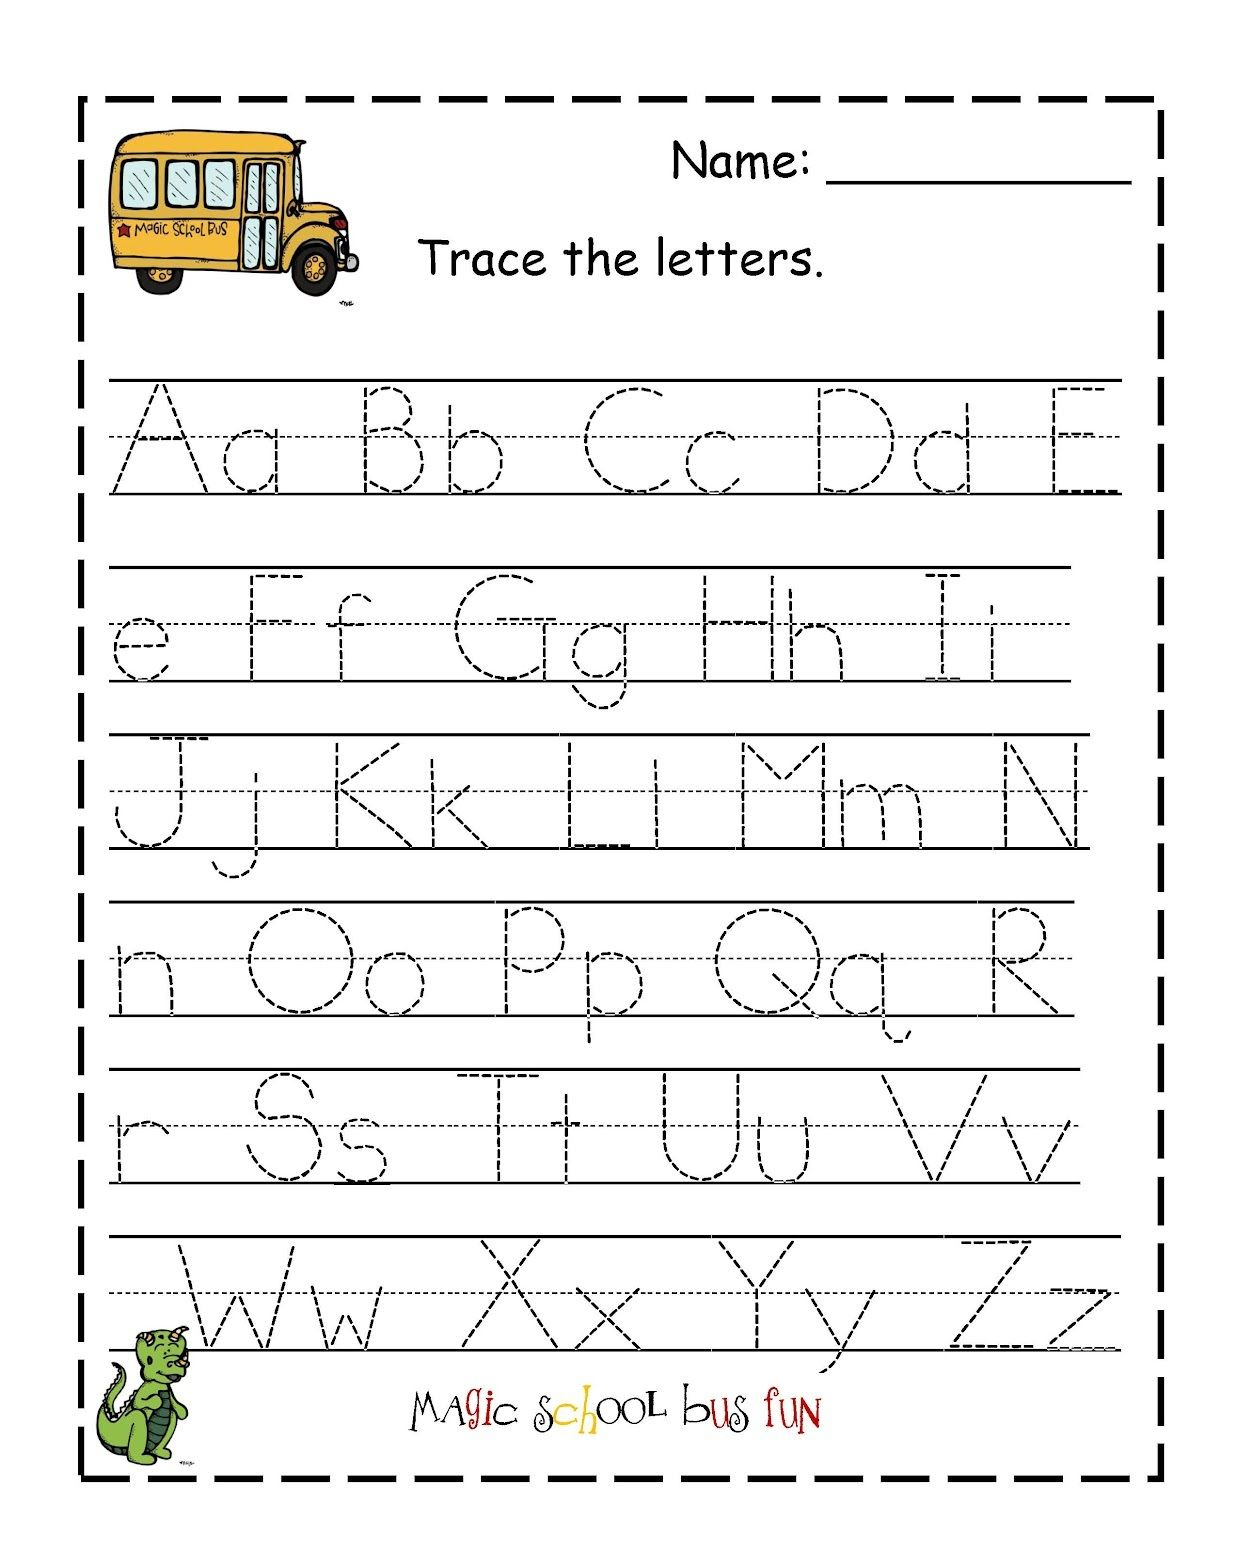 Traceable Letter Worksheets To Print | Alphabet And Numbers Learning | Traceable Abc Printable Worksheets